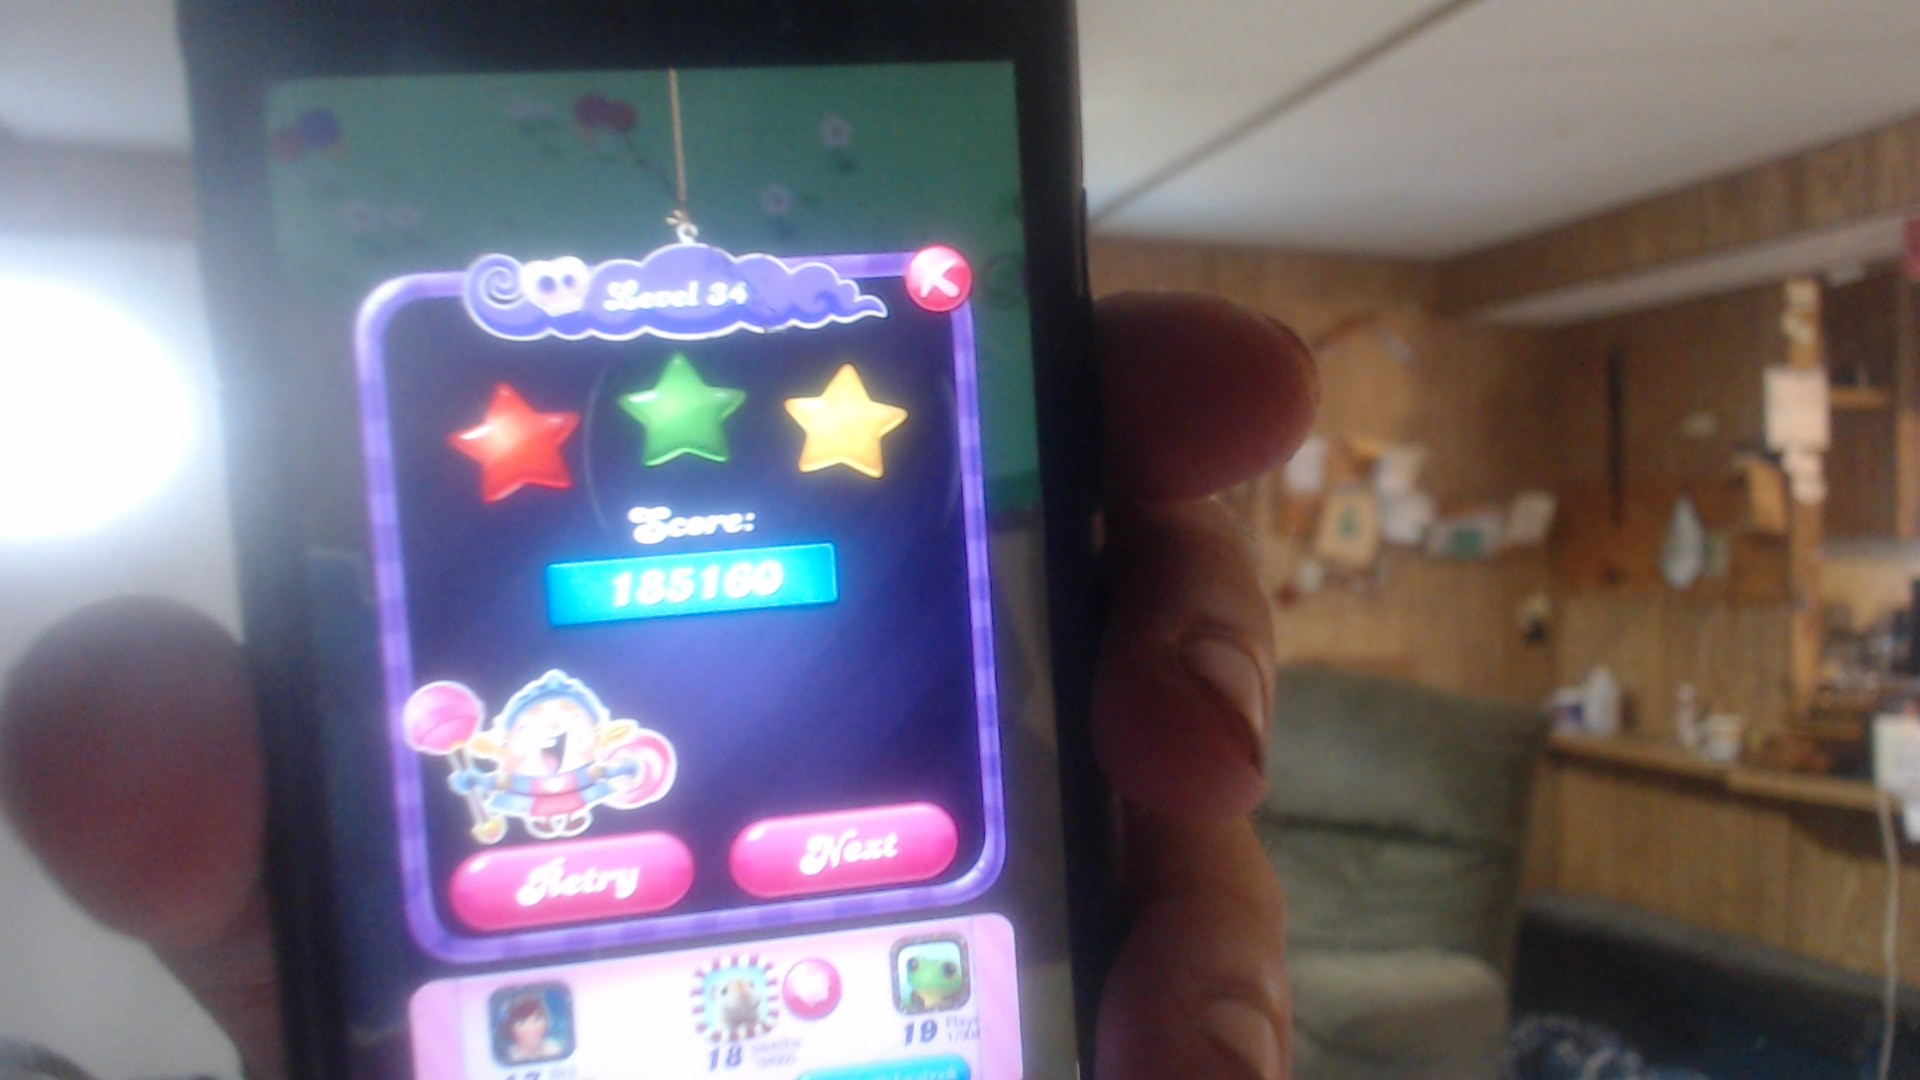 Candy Crush Saga: Level 034 185,160 points